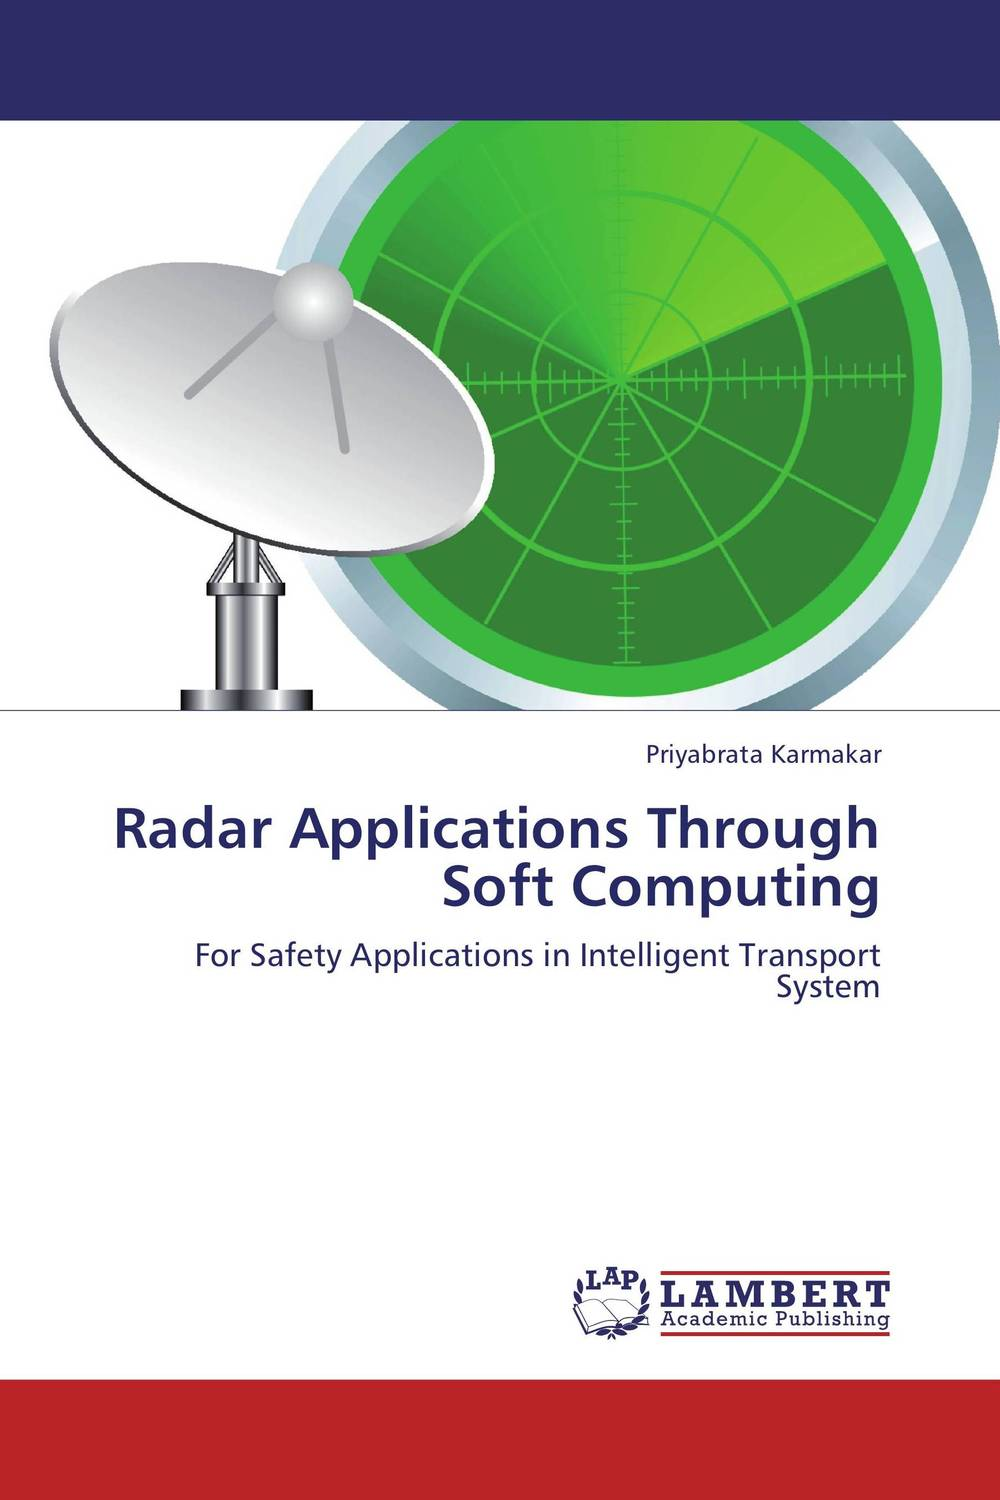 Radar Applications Through Soft Computing soft computing and applications